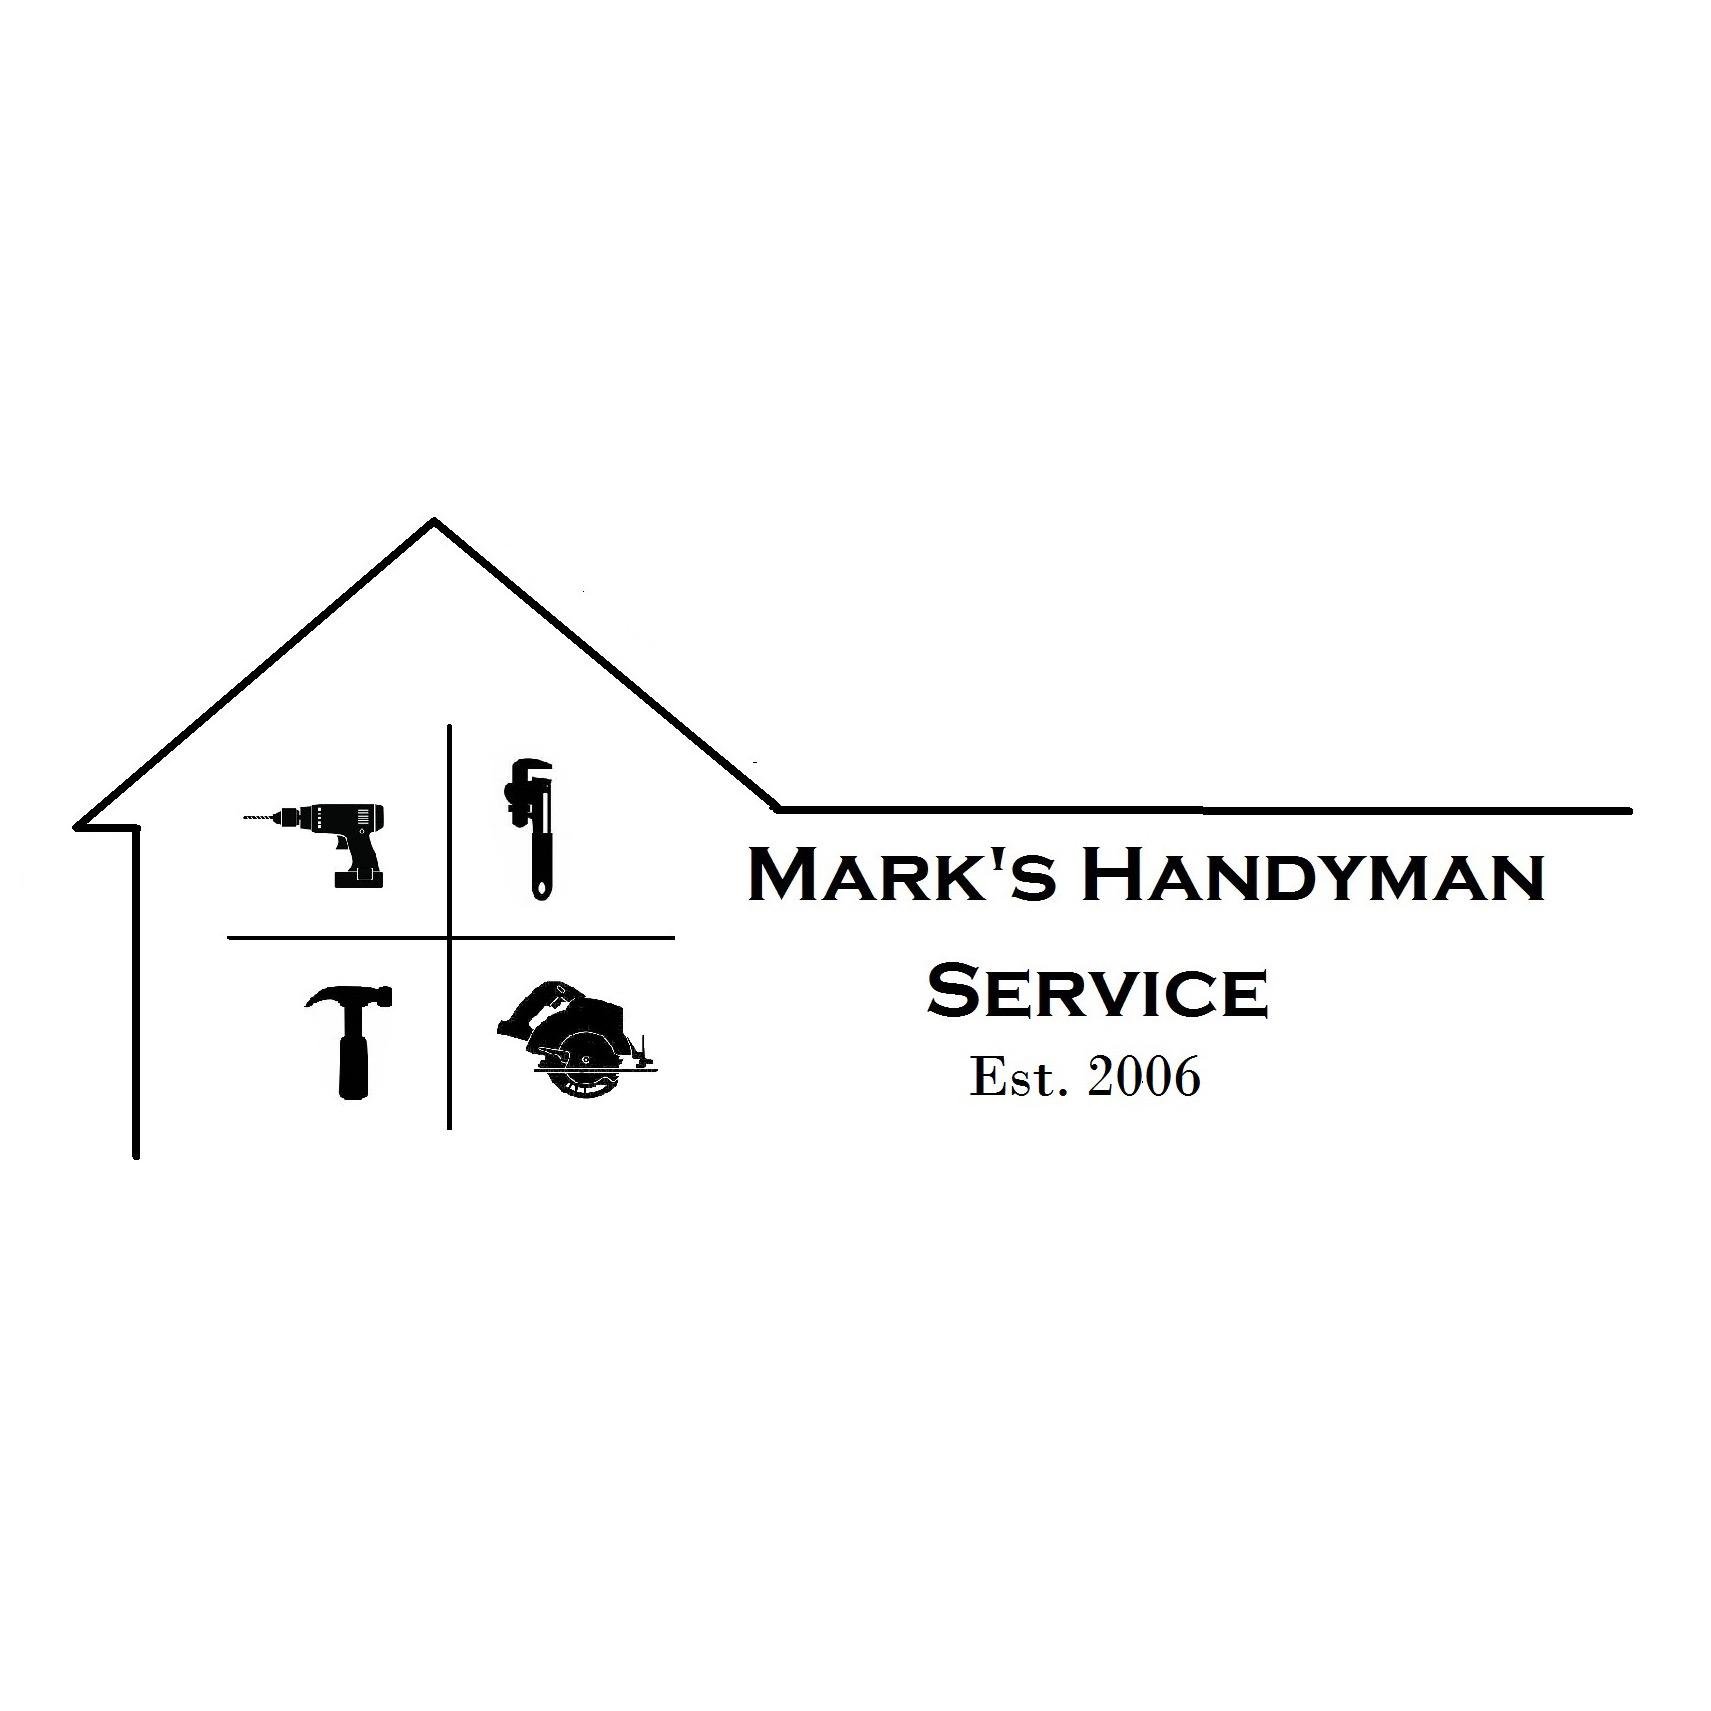 Mark's Handyman Services